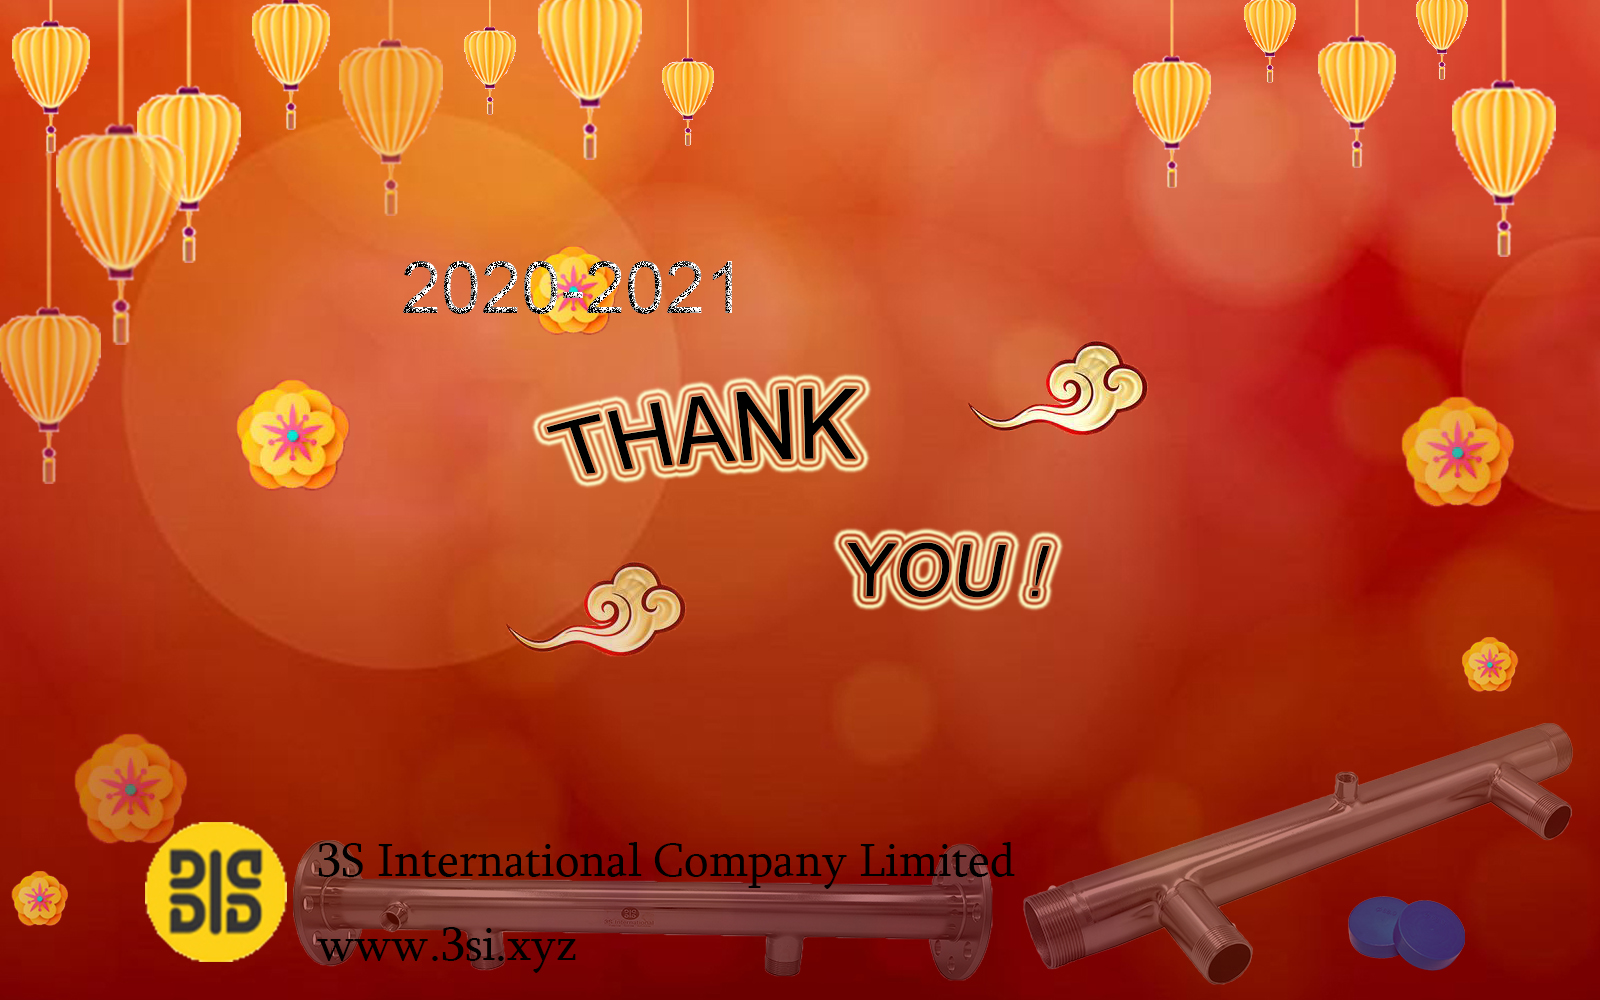 Thanks to all customers' trust and Chinese New Year Holiday